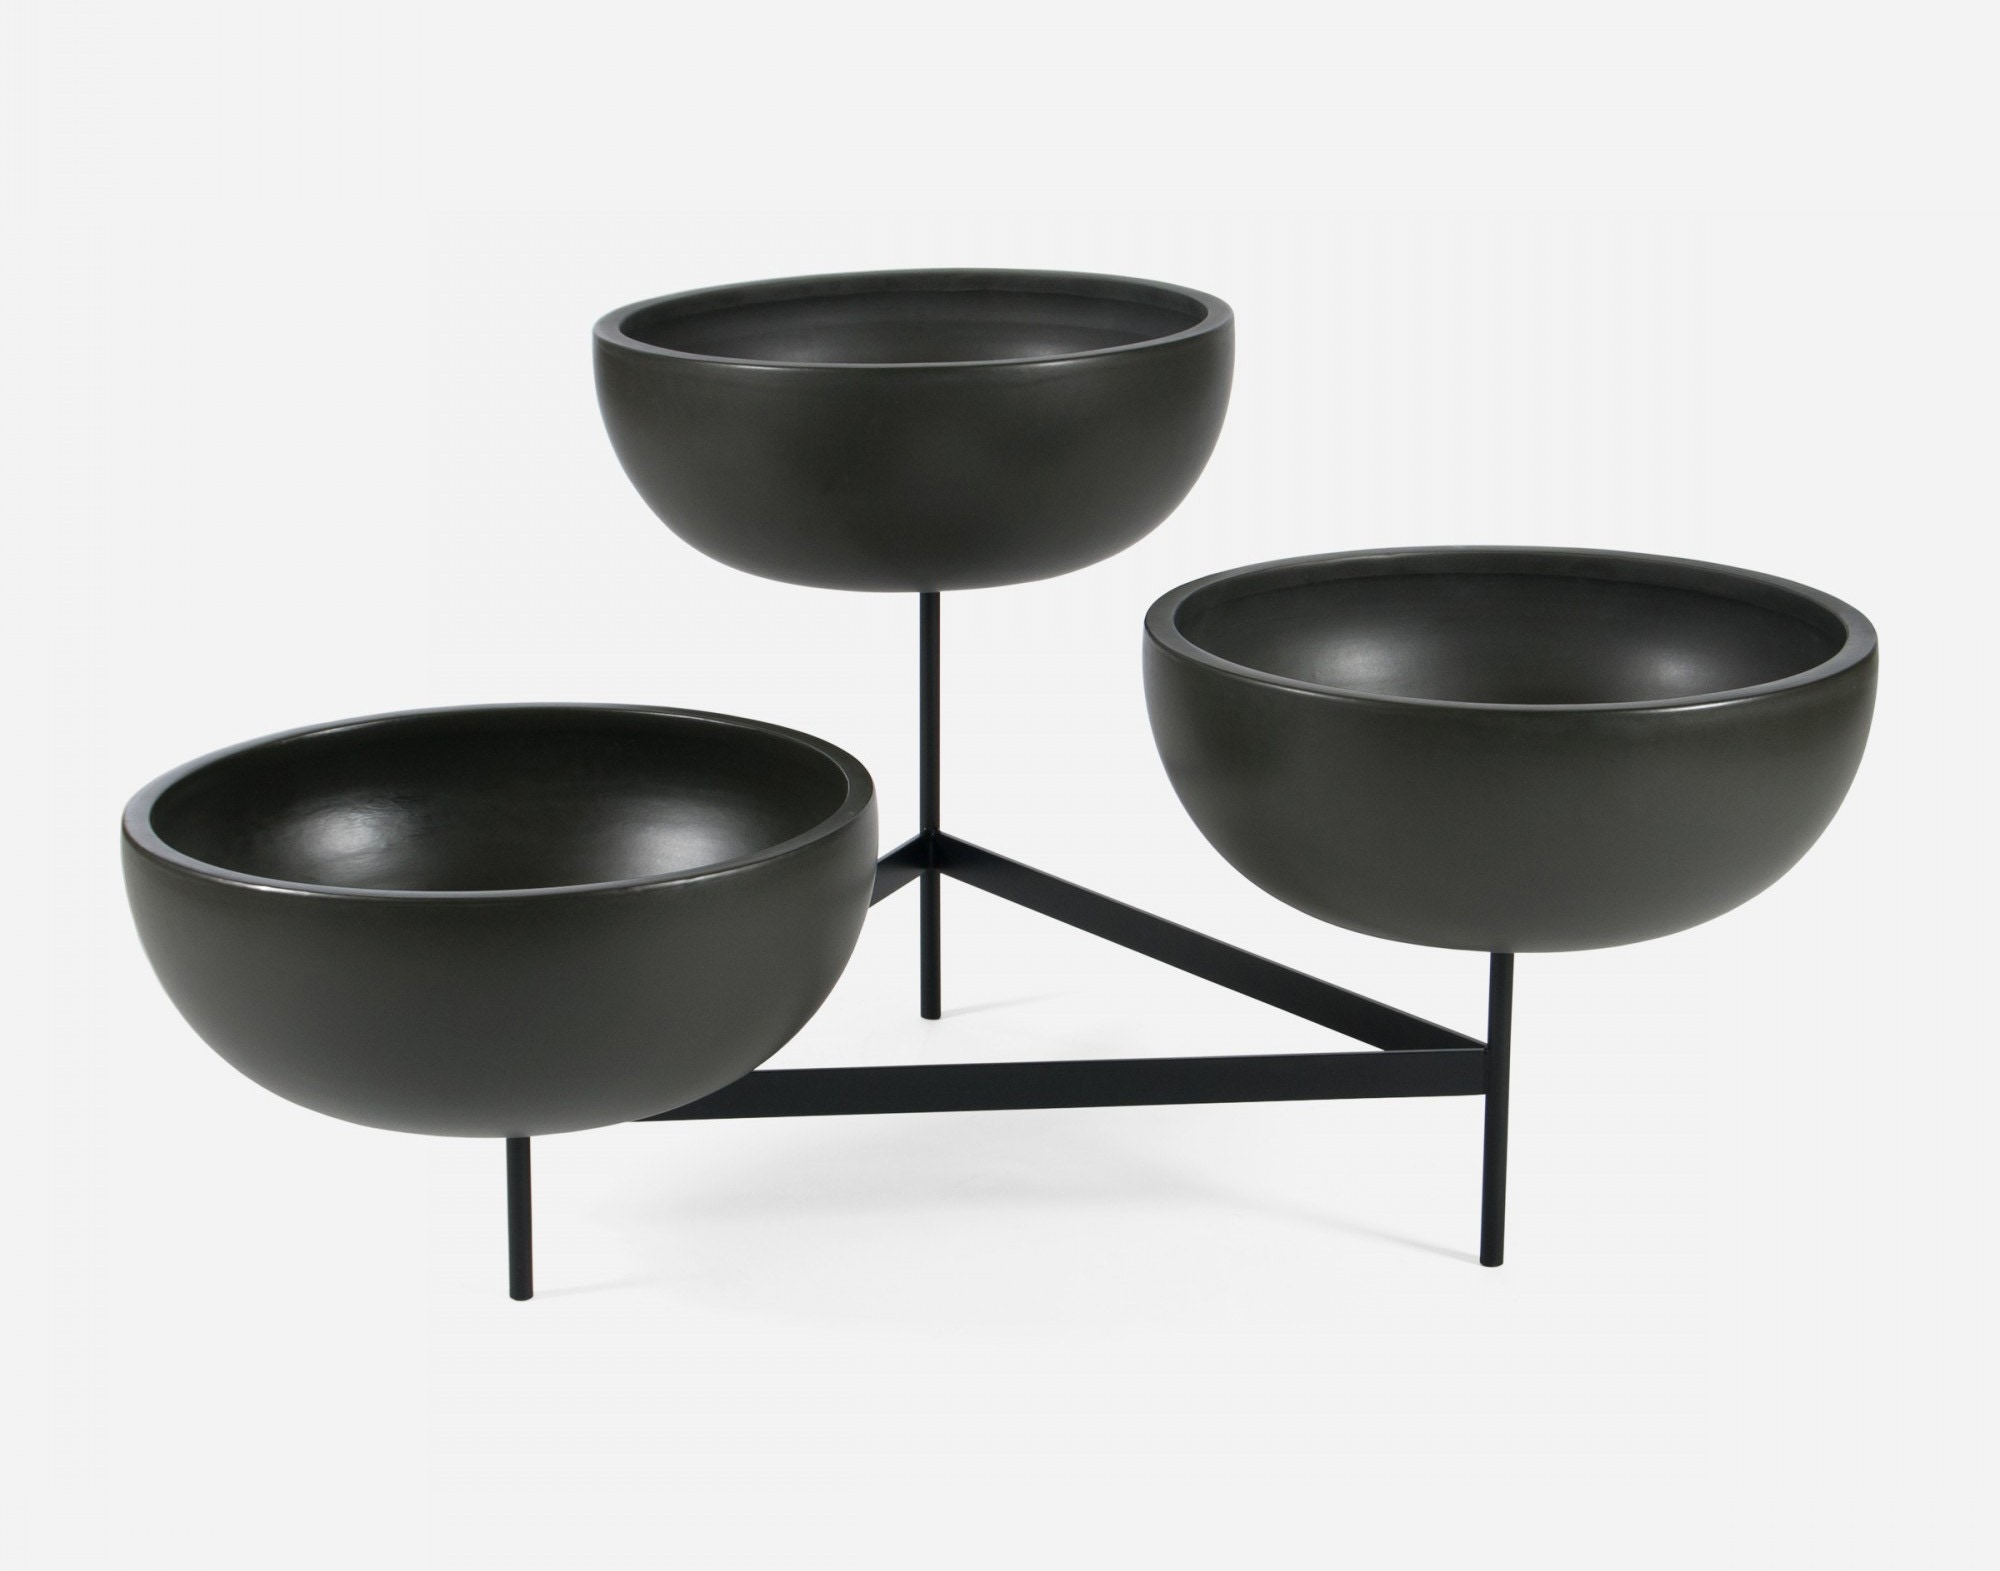 Modernica Case Study® Ceramics Large Bowls With Tri Stand (Planter)